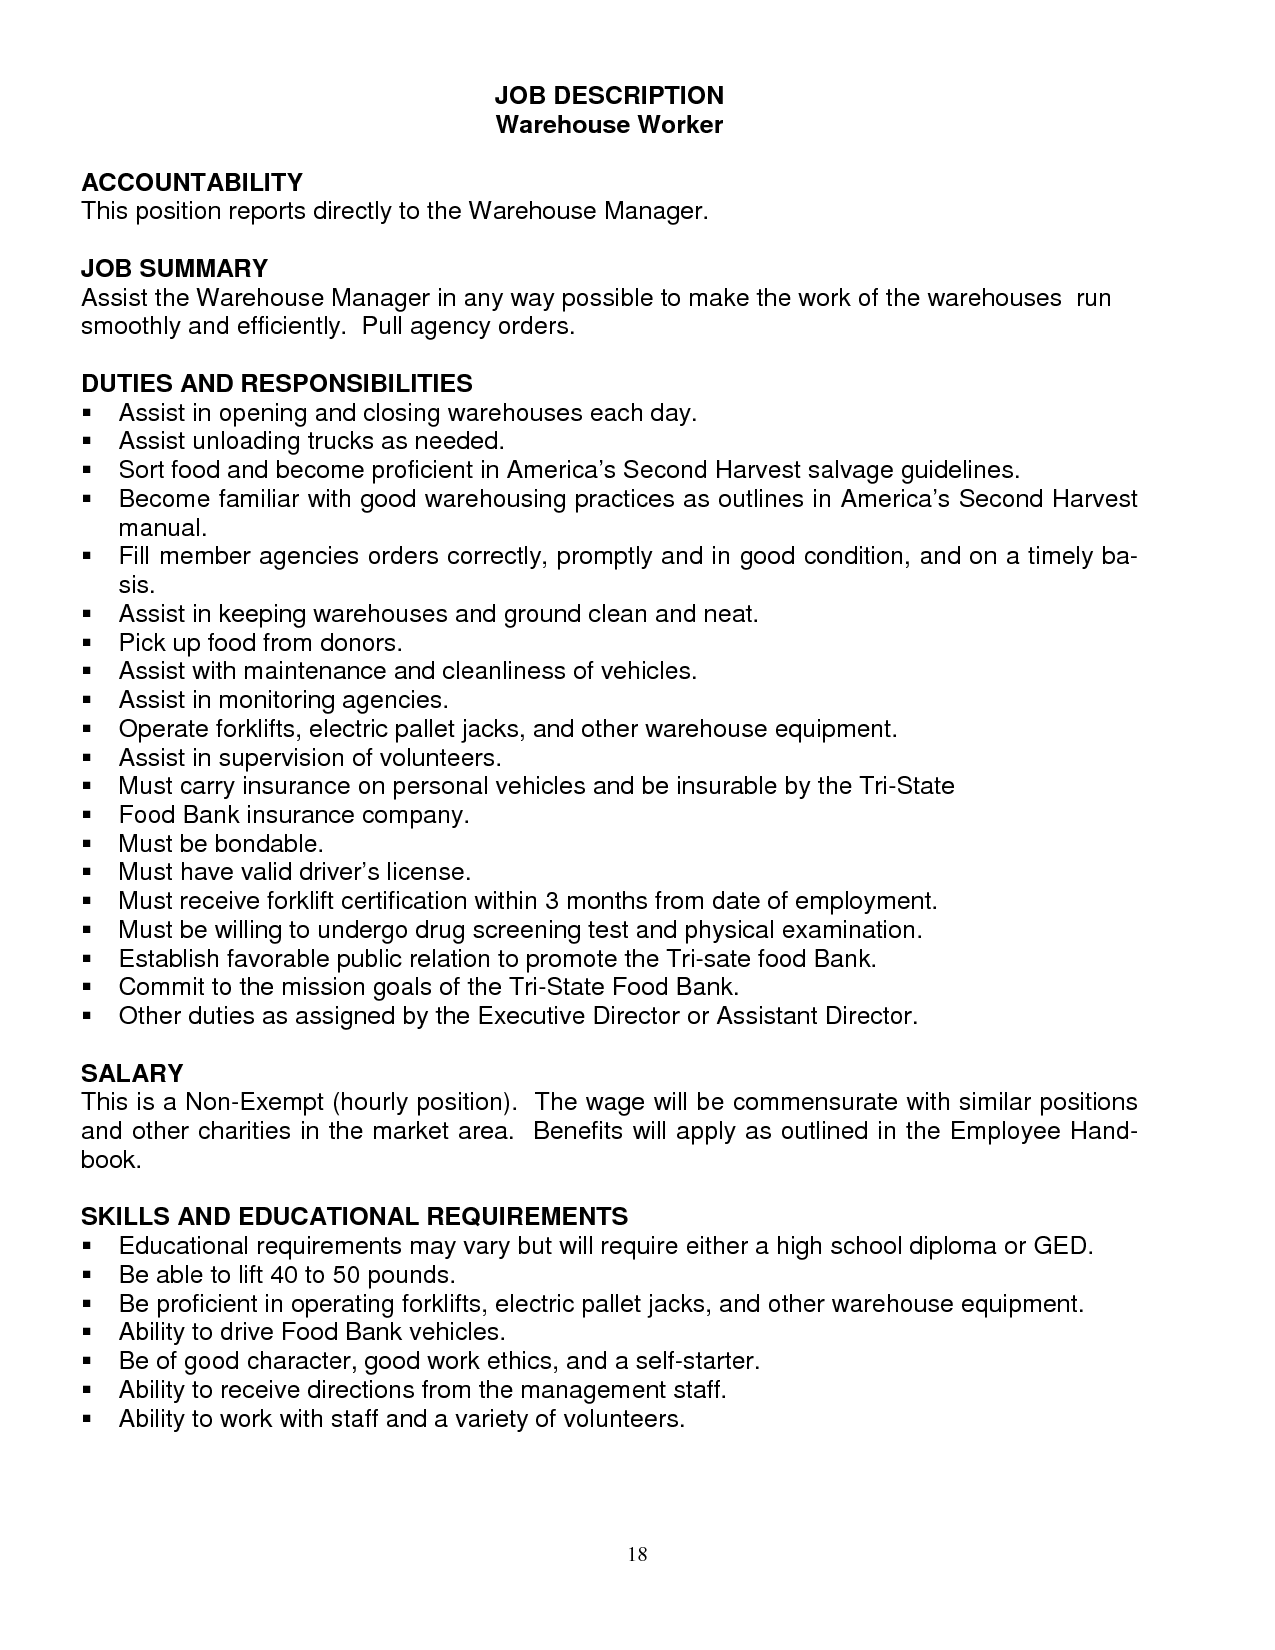 operations geologist resume warehouse worker